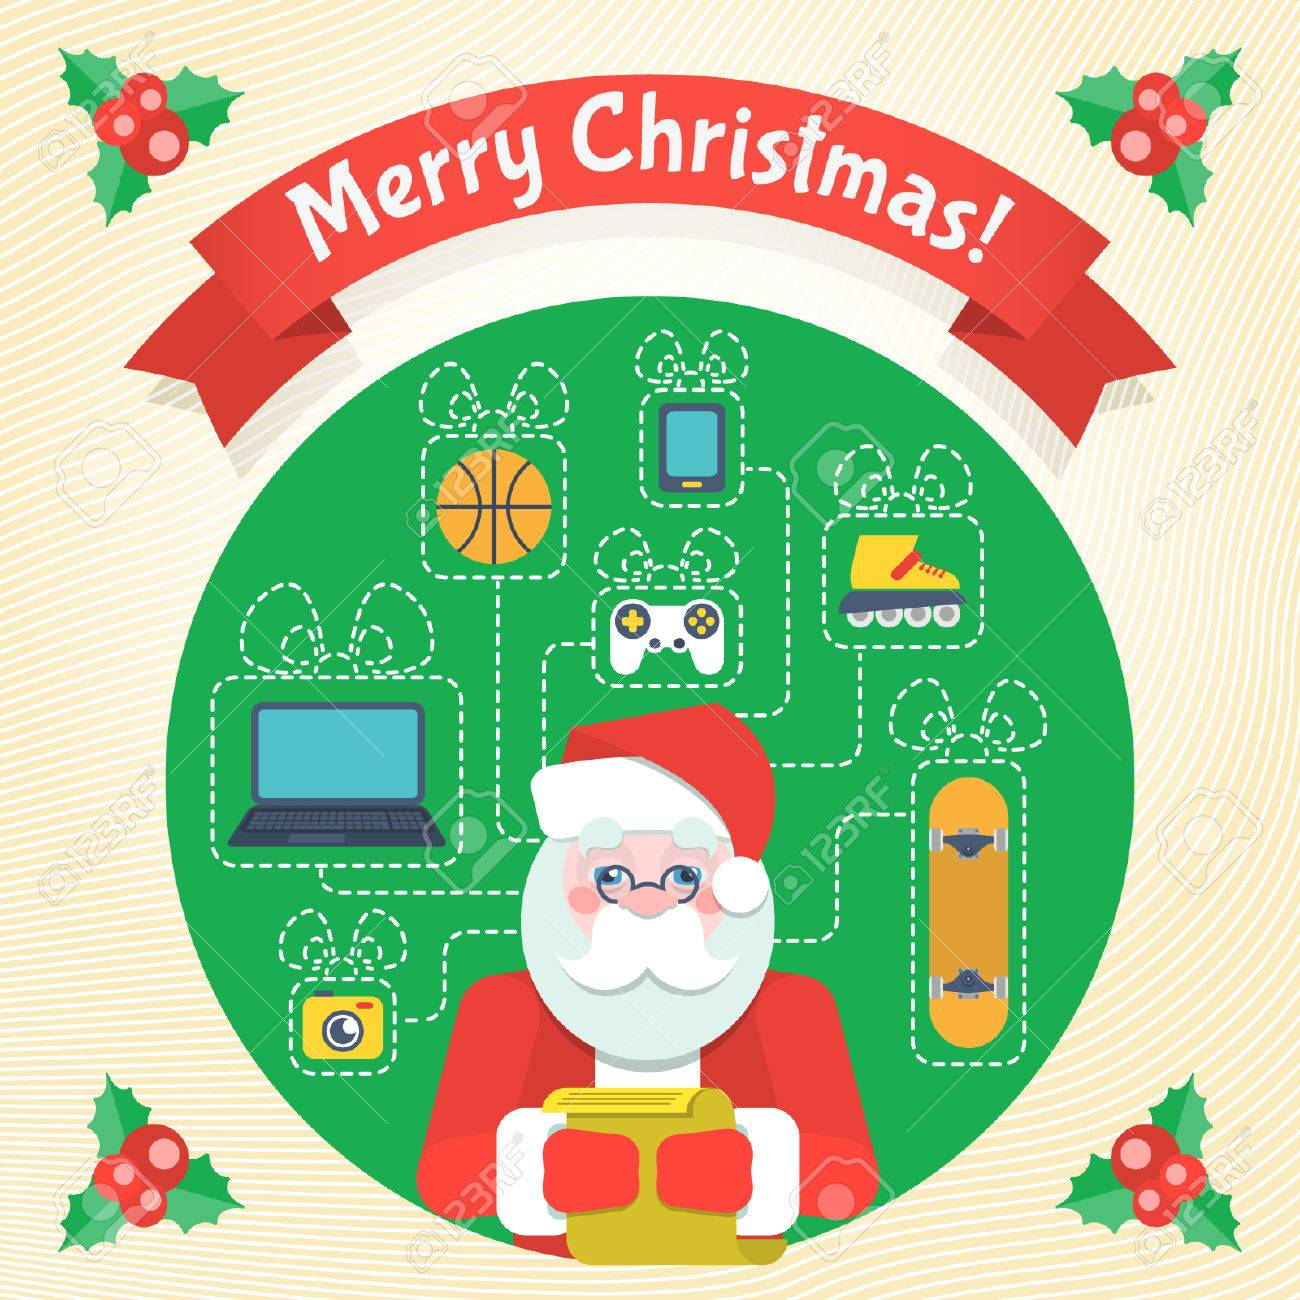 Christmas Card With Santa Claus And A List Of Wishes And Gifts ...